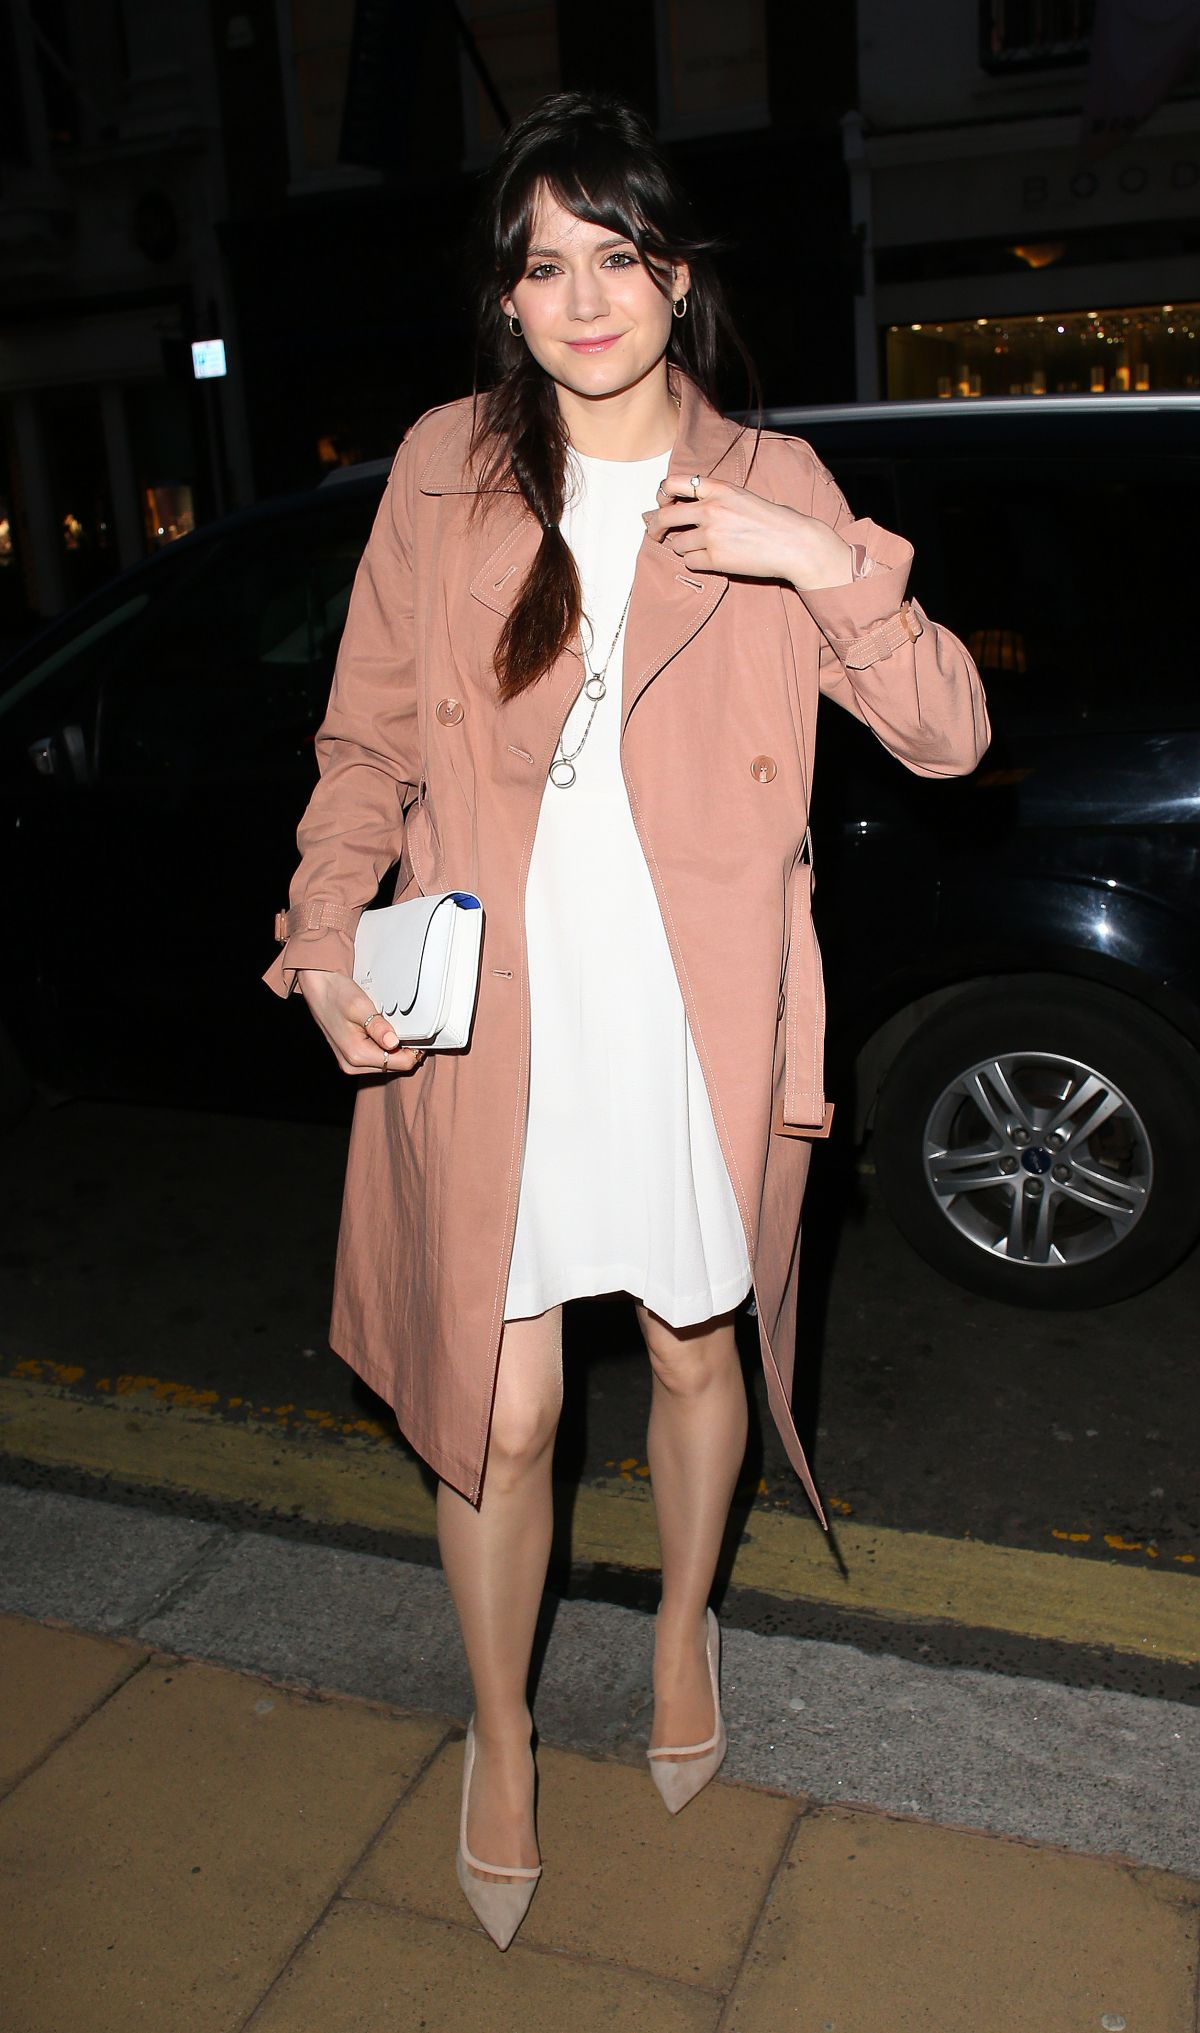 LILAH PARSONS at Louise Roe Book Launch in London